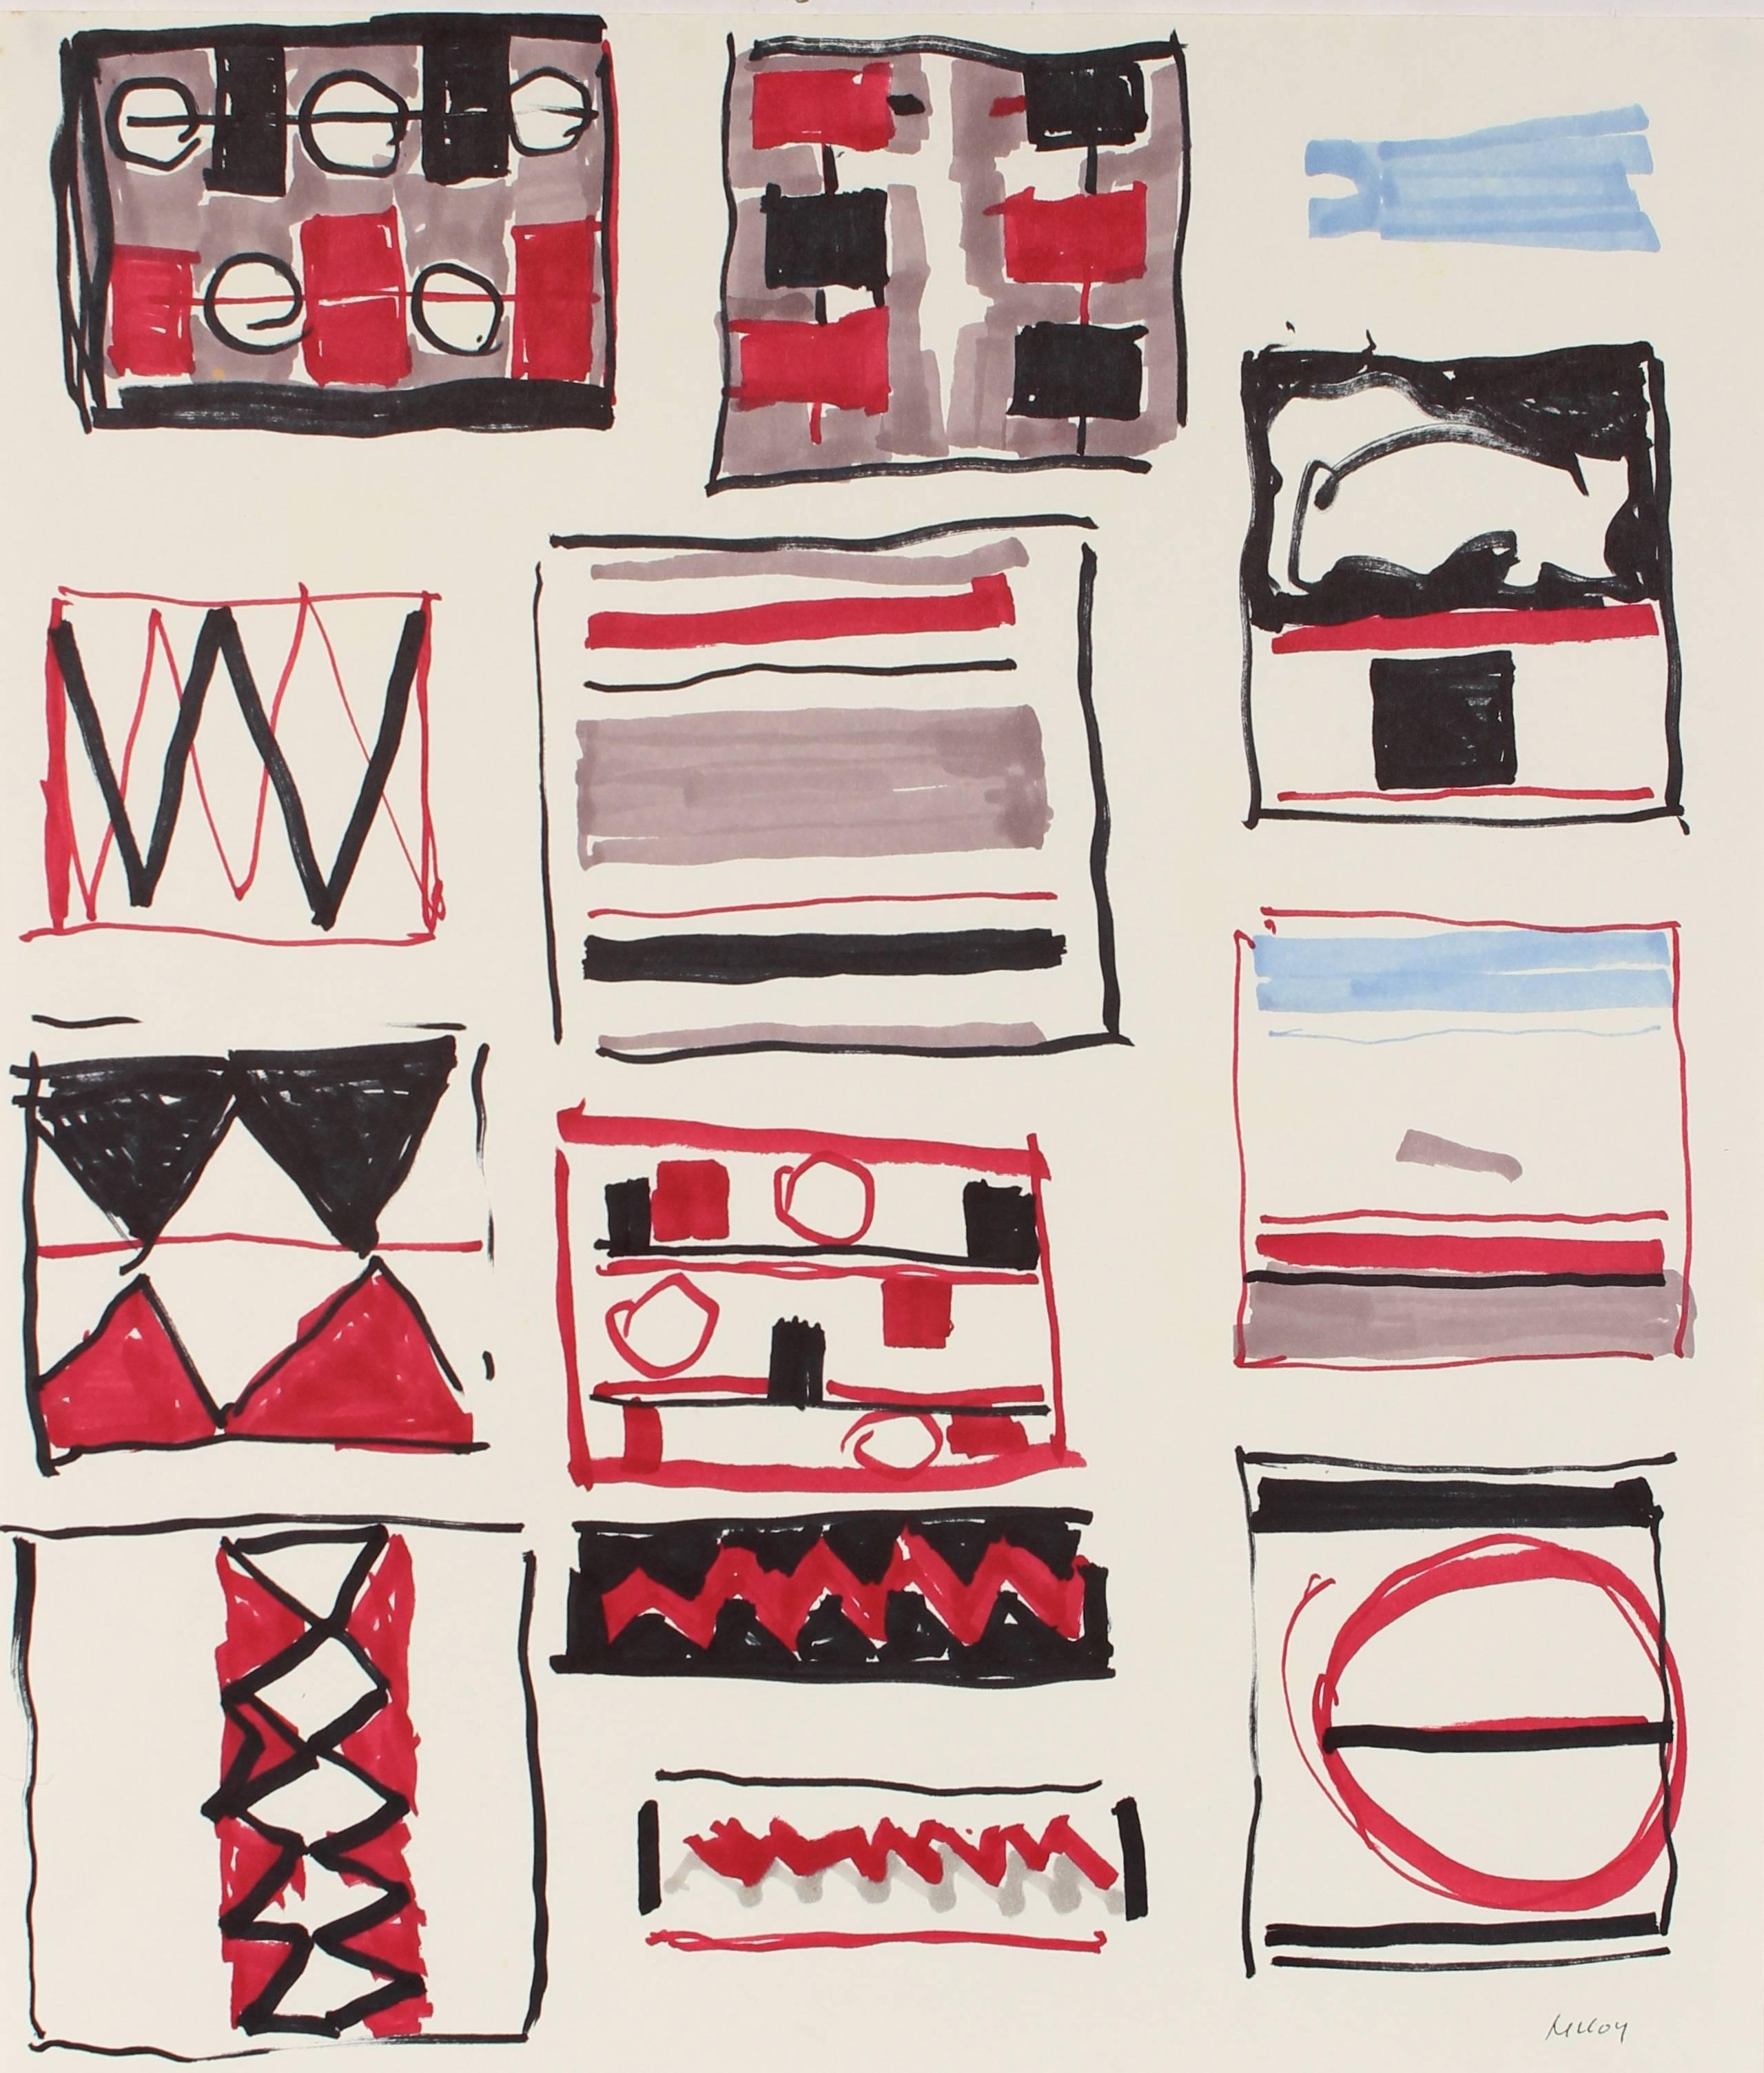 Geometric Abstract in Red and Black Ink, Circa 1960s